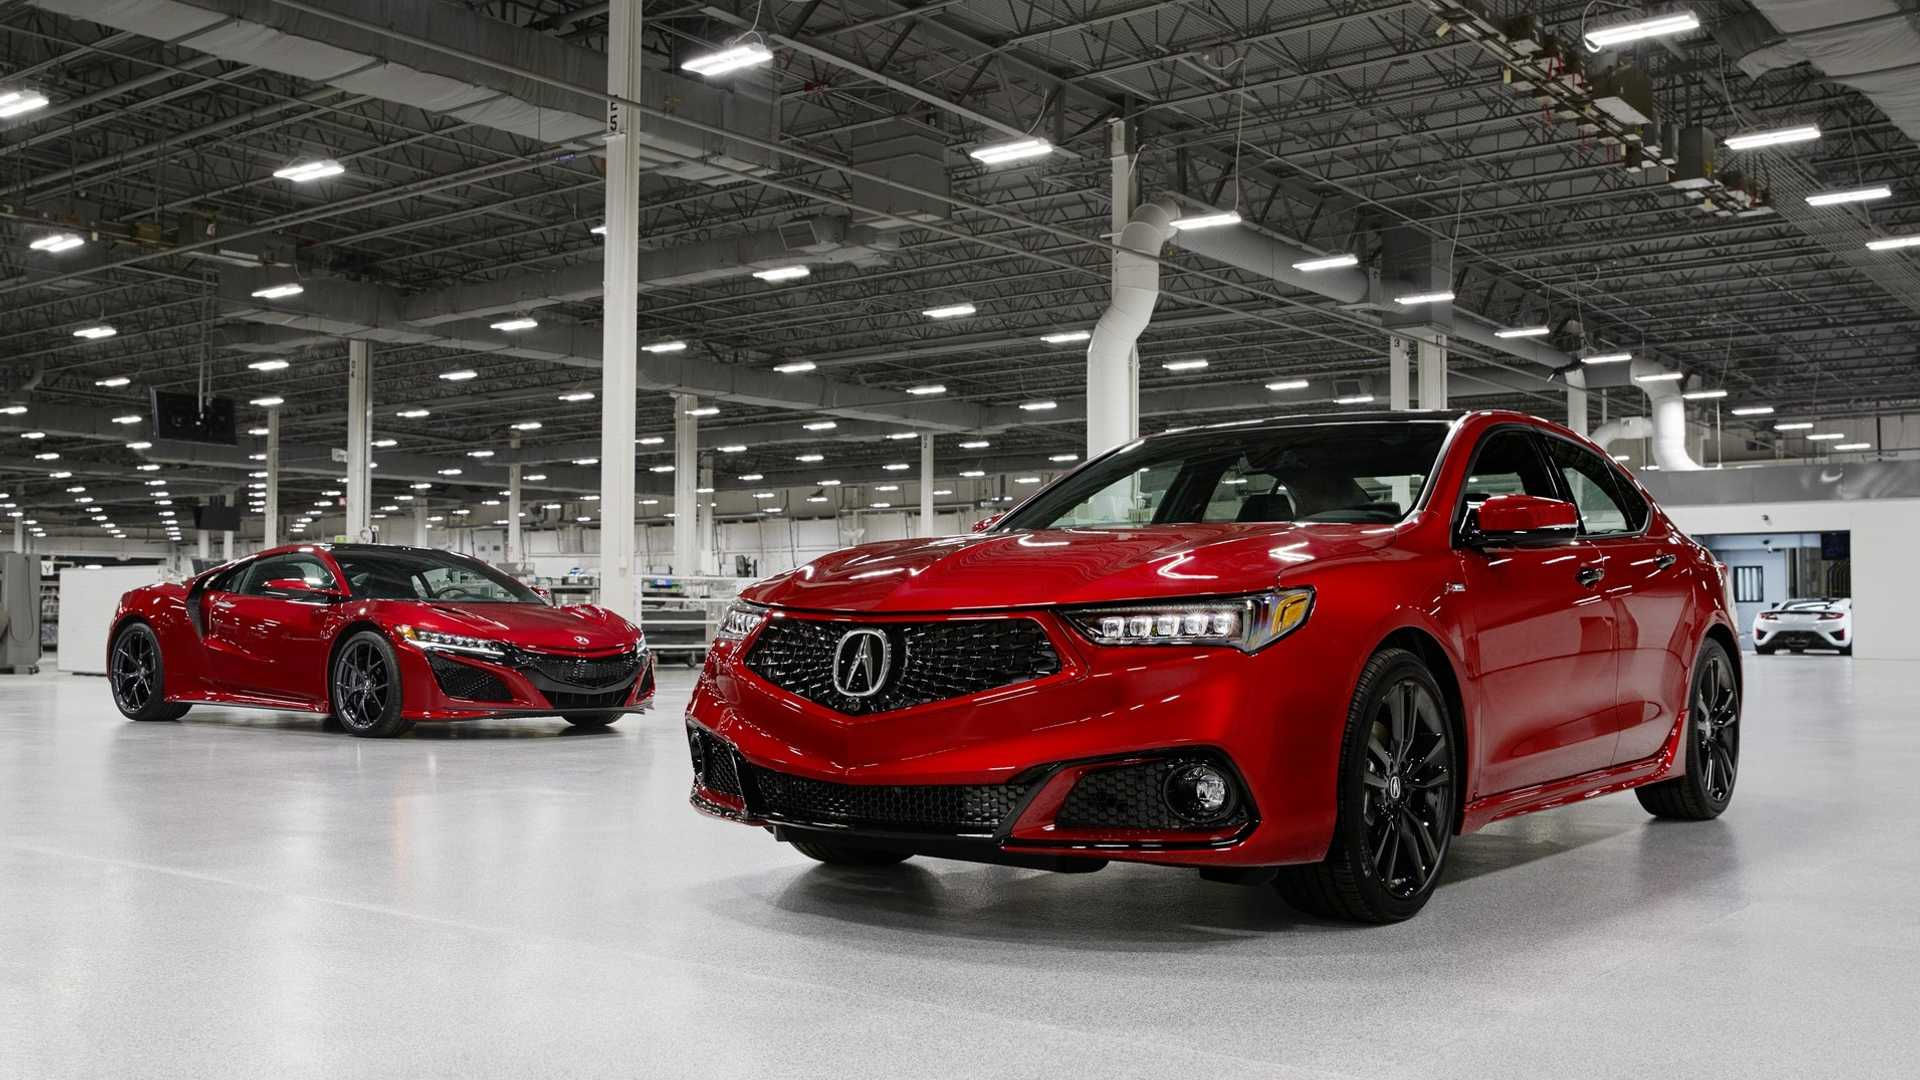 2020 Acura TLX PMC Edition and Acura NSX Wallpaper (1)